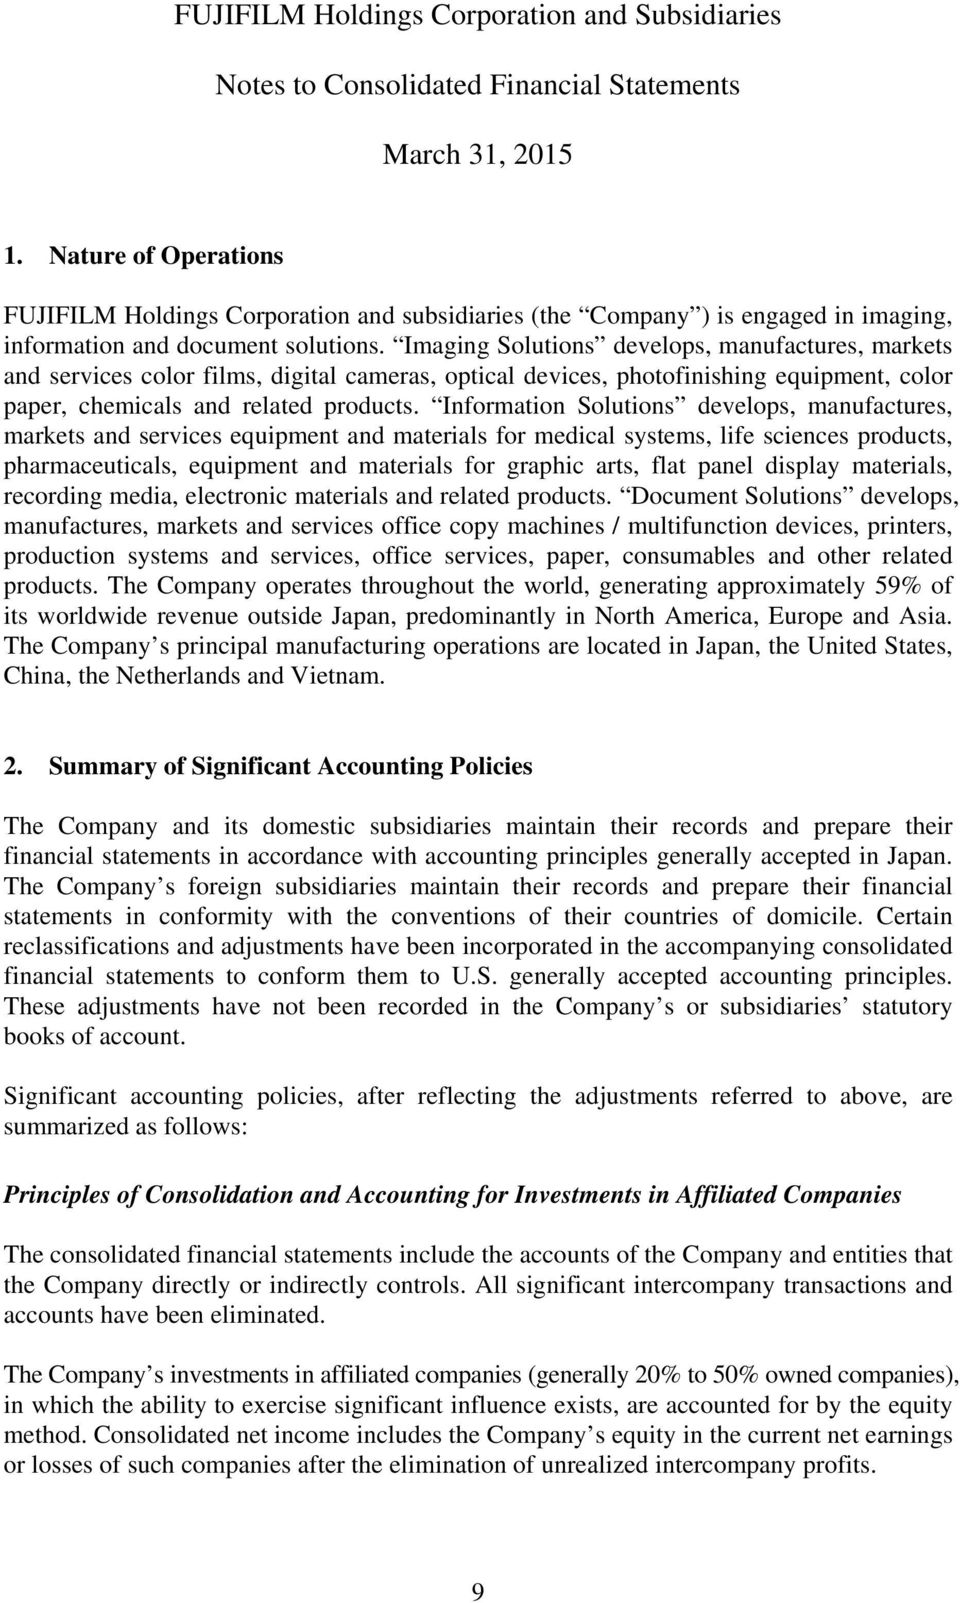 Consolidated Financial Statements  FUJIFILM Holdings